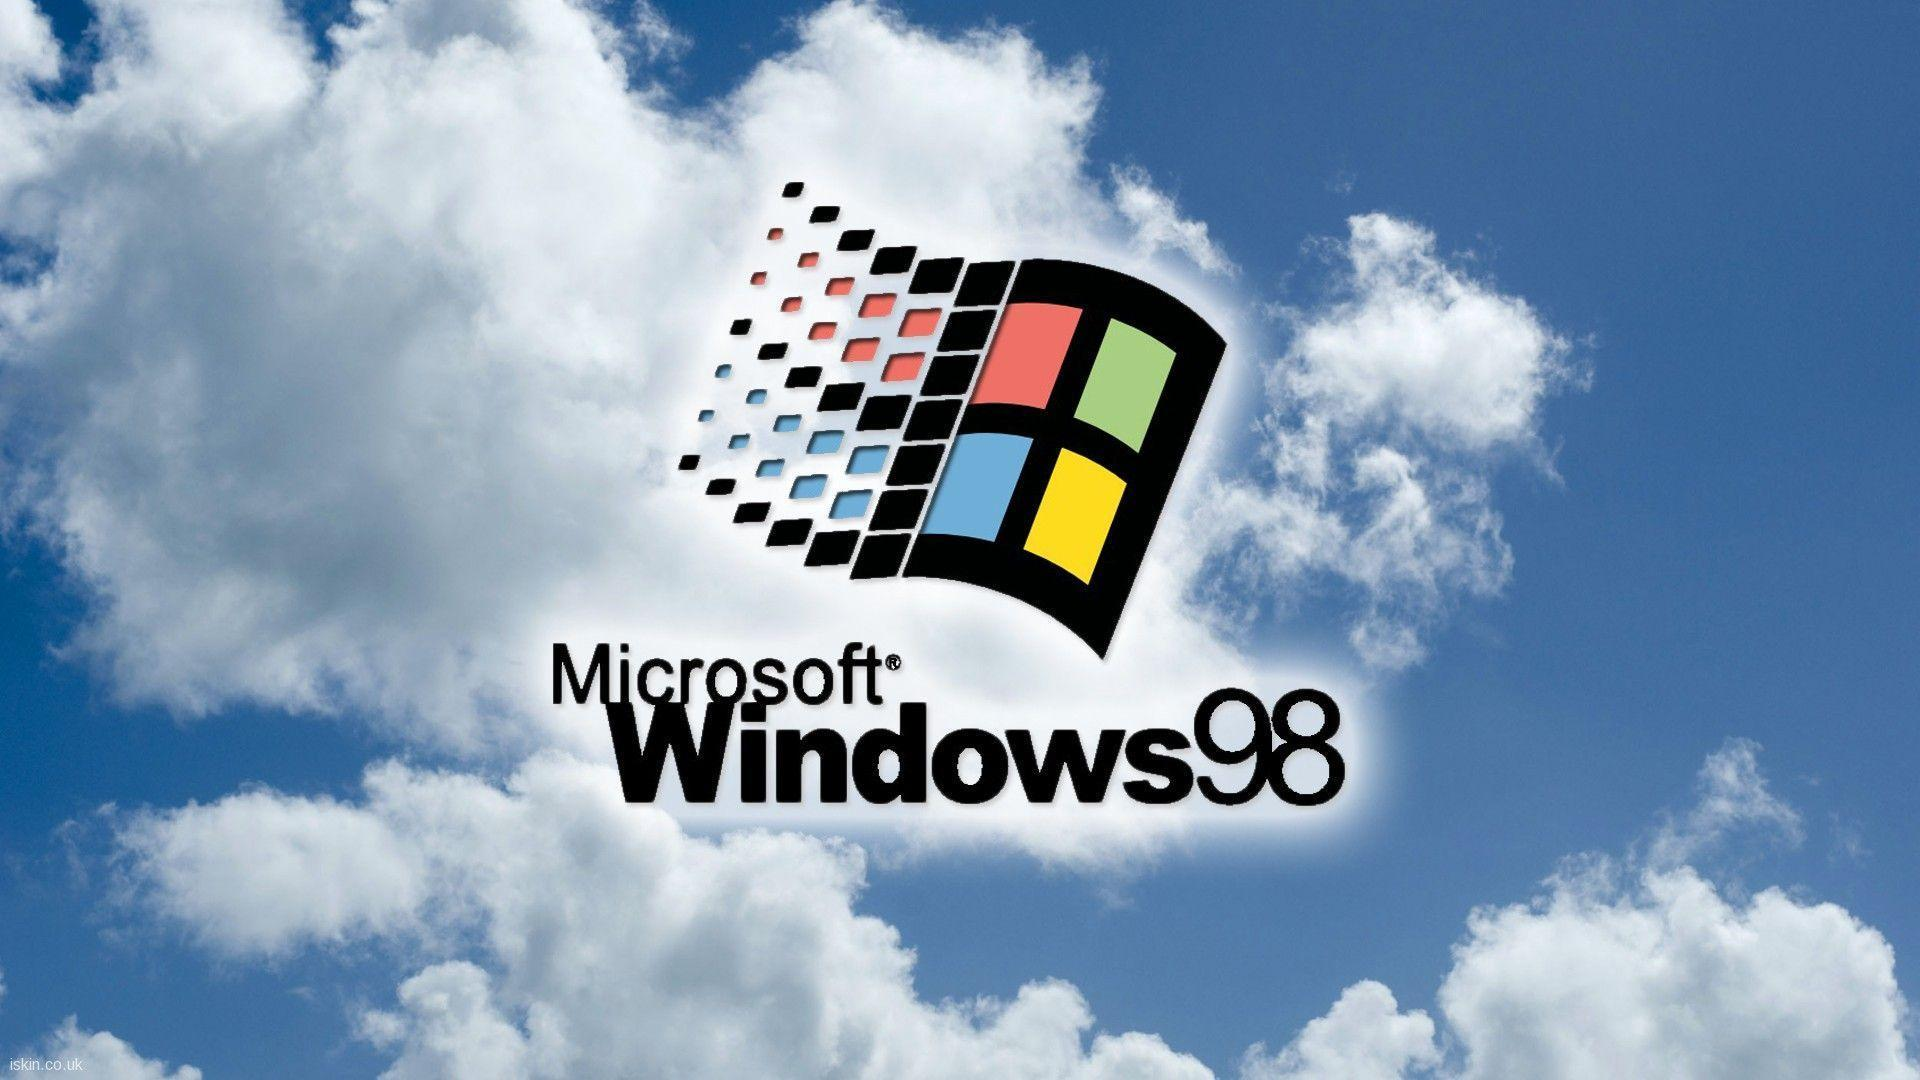 windows 98 wallpapers wallpaper cave